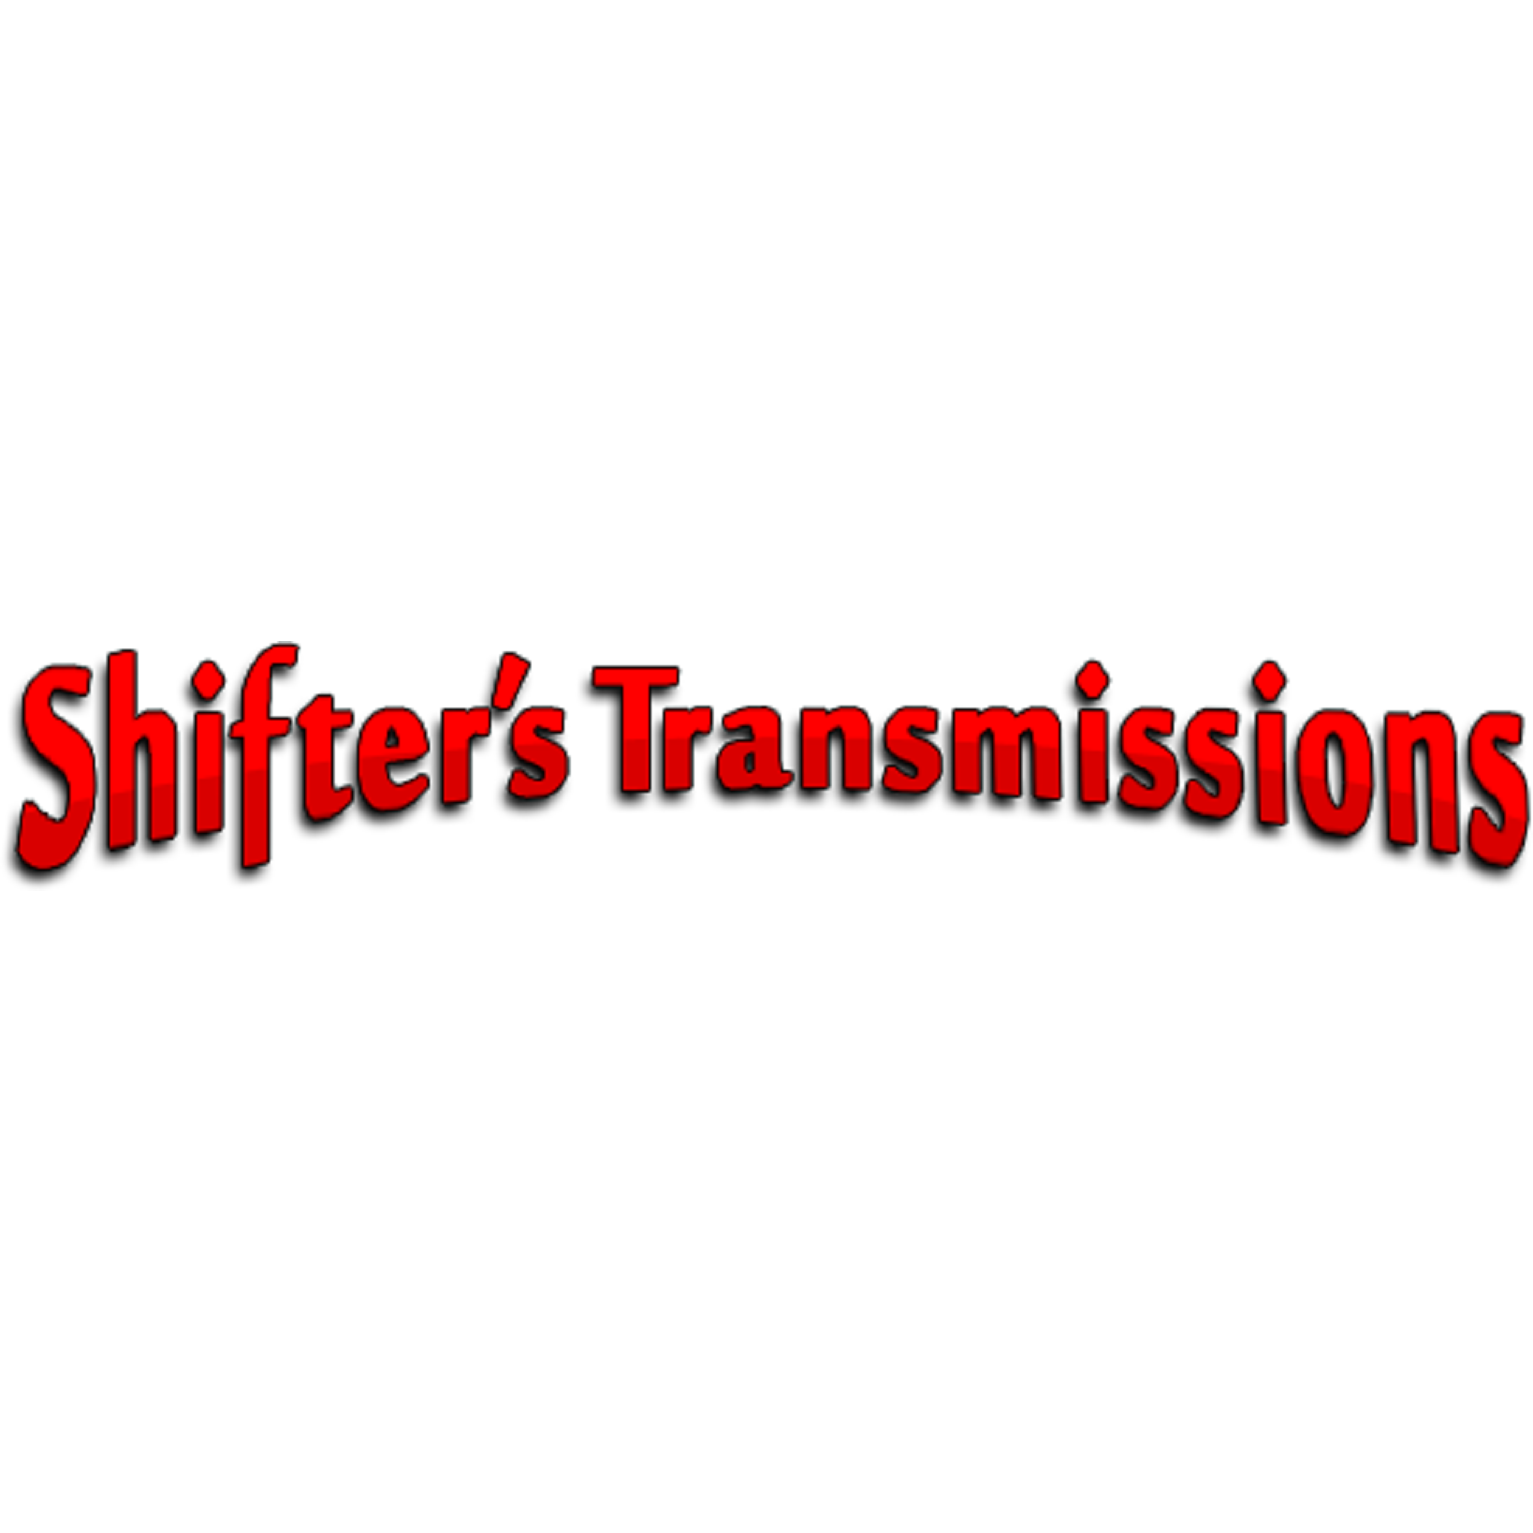 Shifter's Transmissions Inc image 1